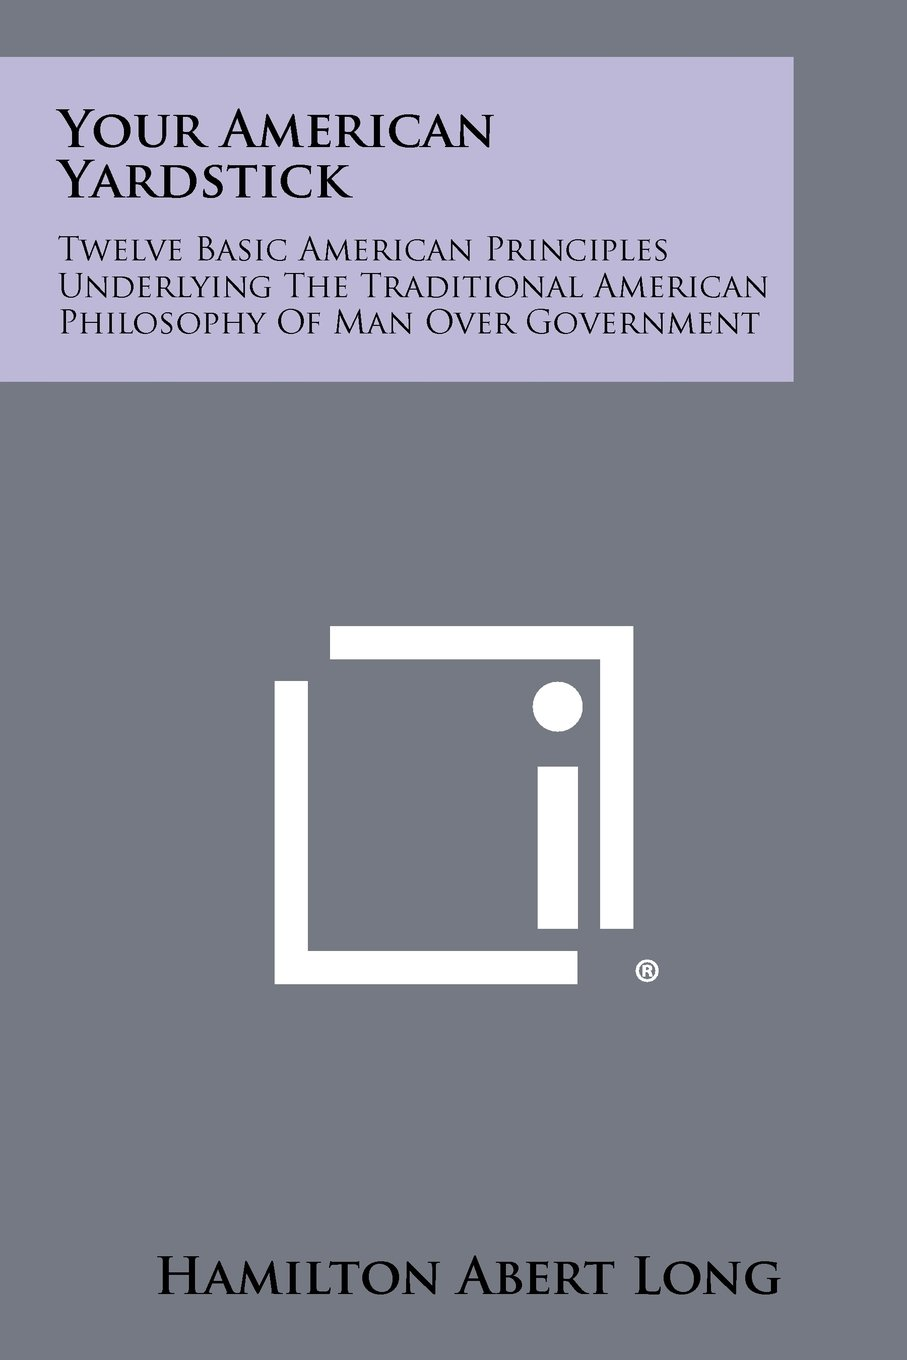 Download Your American Yardstick: Twelve Basic American Principles Underlying The Traditional American Philosophy Of Man Over Government pdf